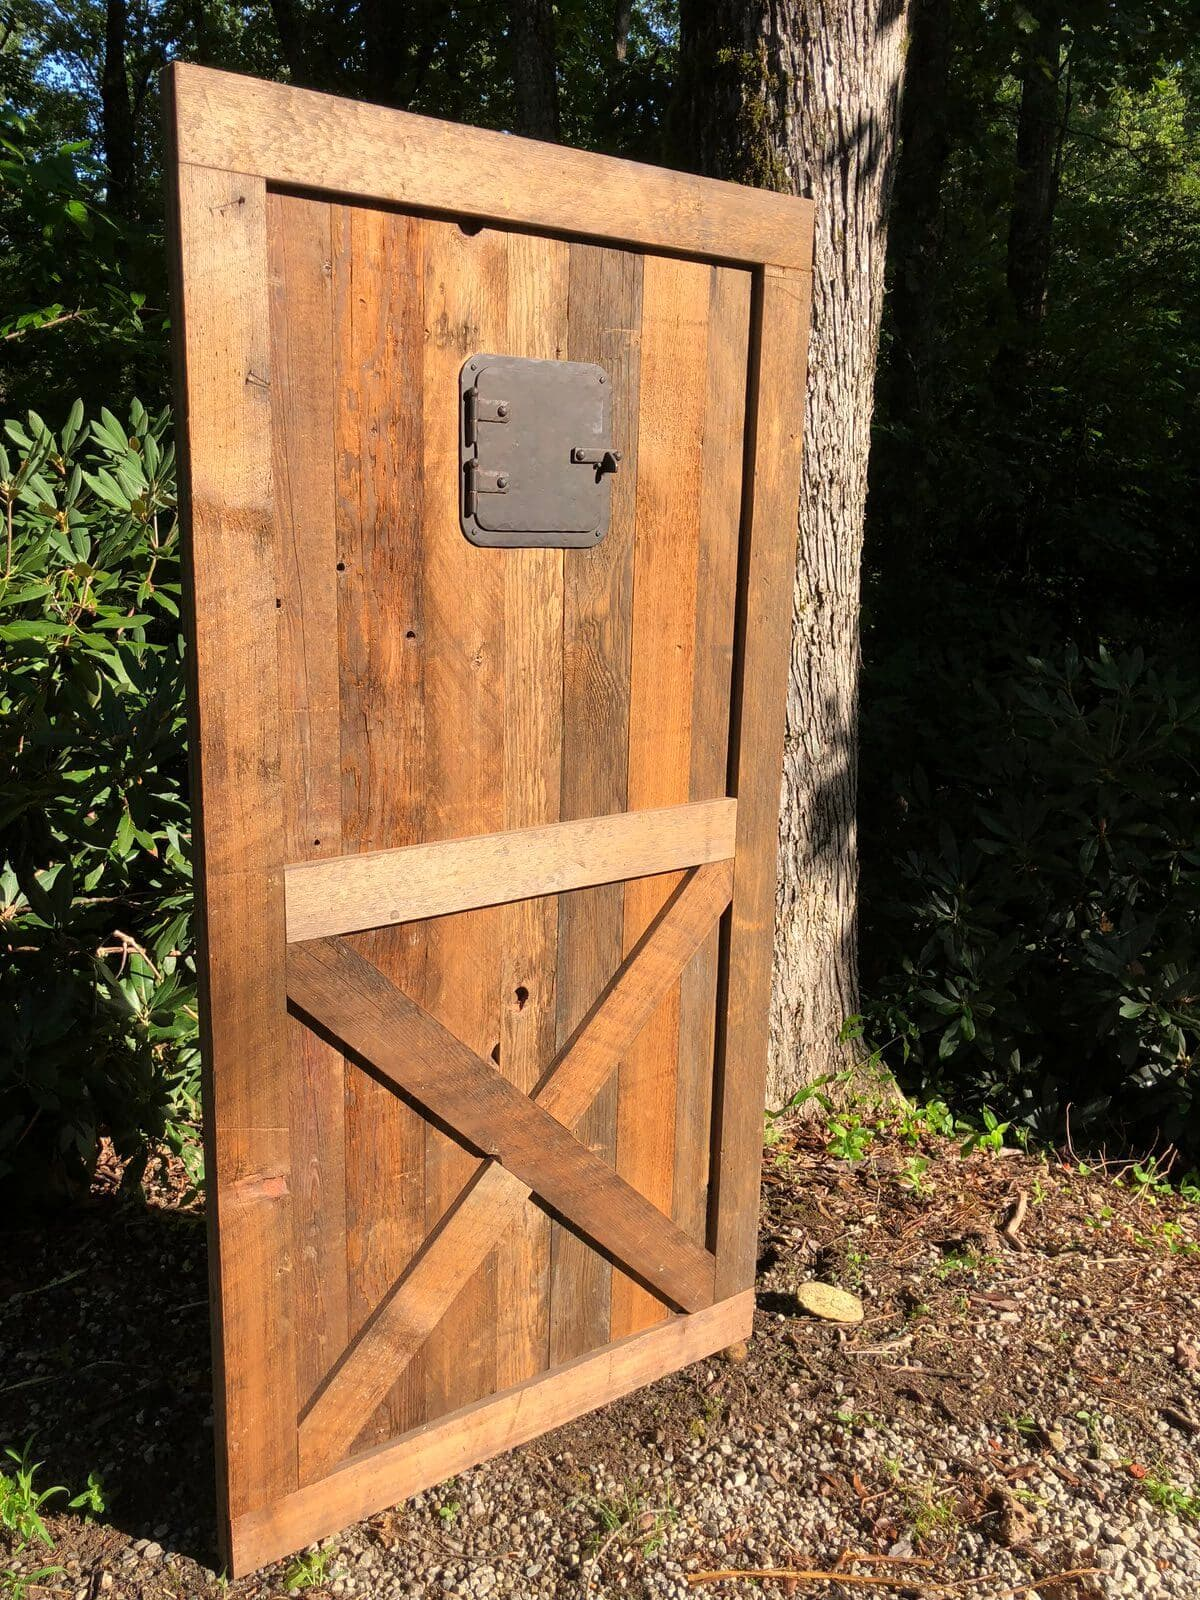 Rustic Georgia Pine Barn Door Grasse in production photo set outside